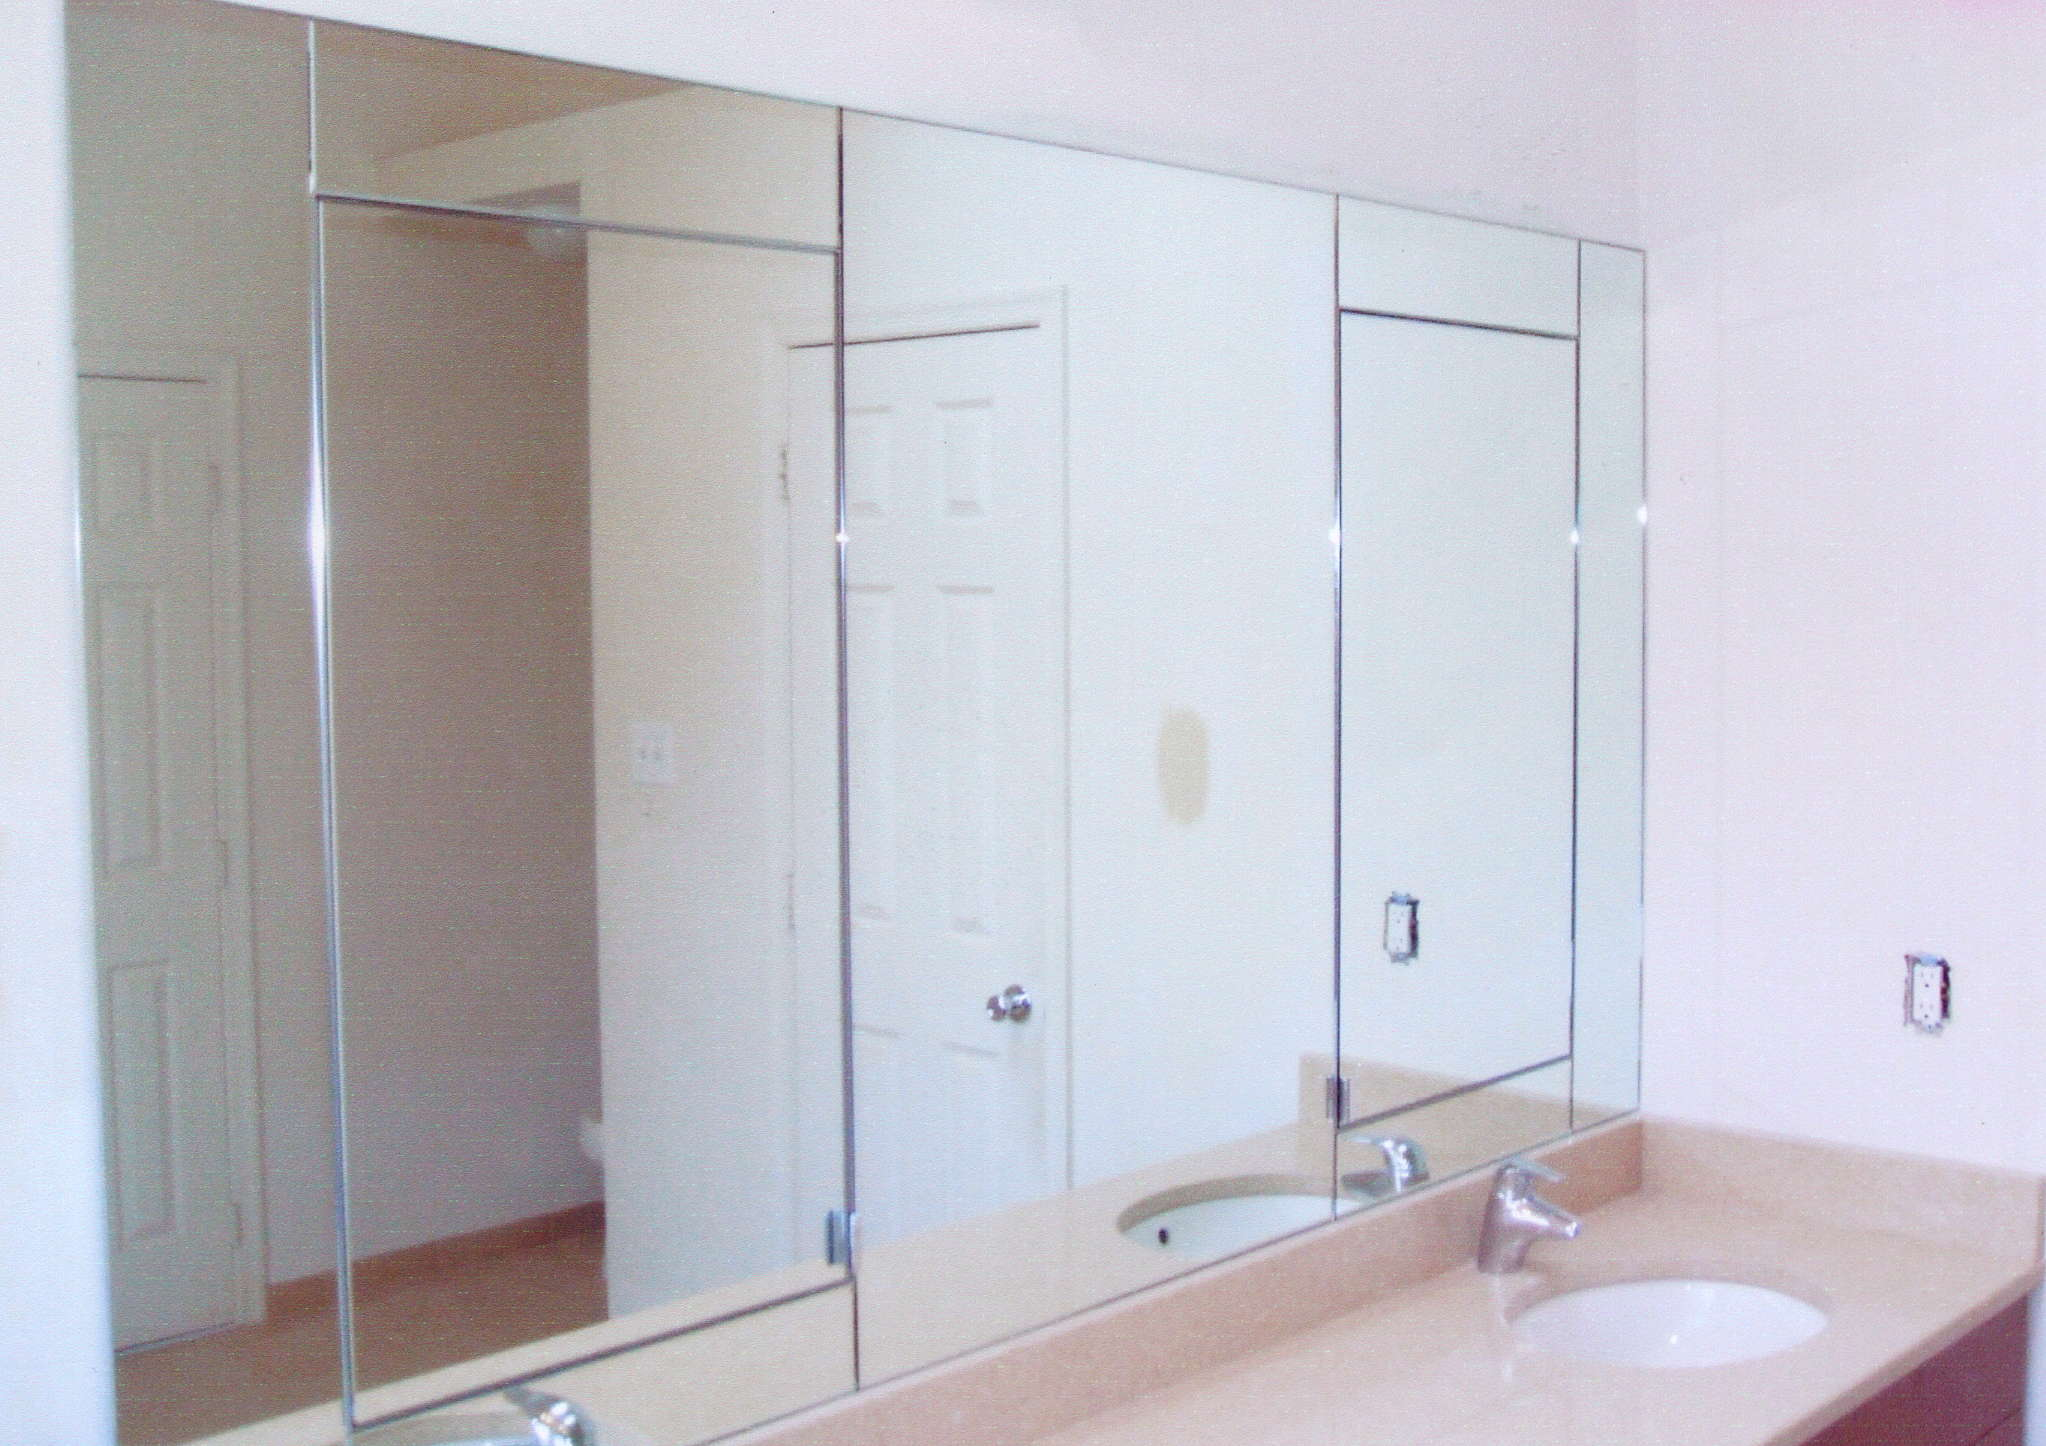 keep-your-wall-mirrors-squeaky-clean-with-these-basic-tips-rockville-md